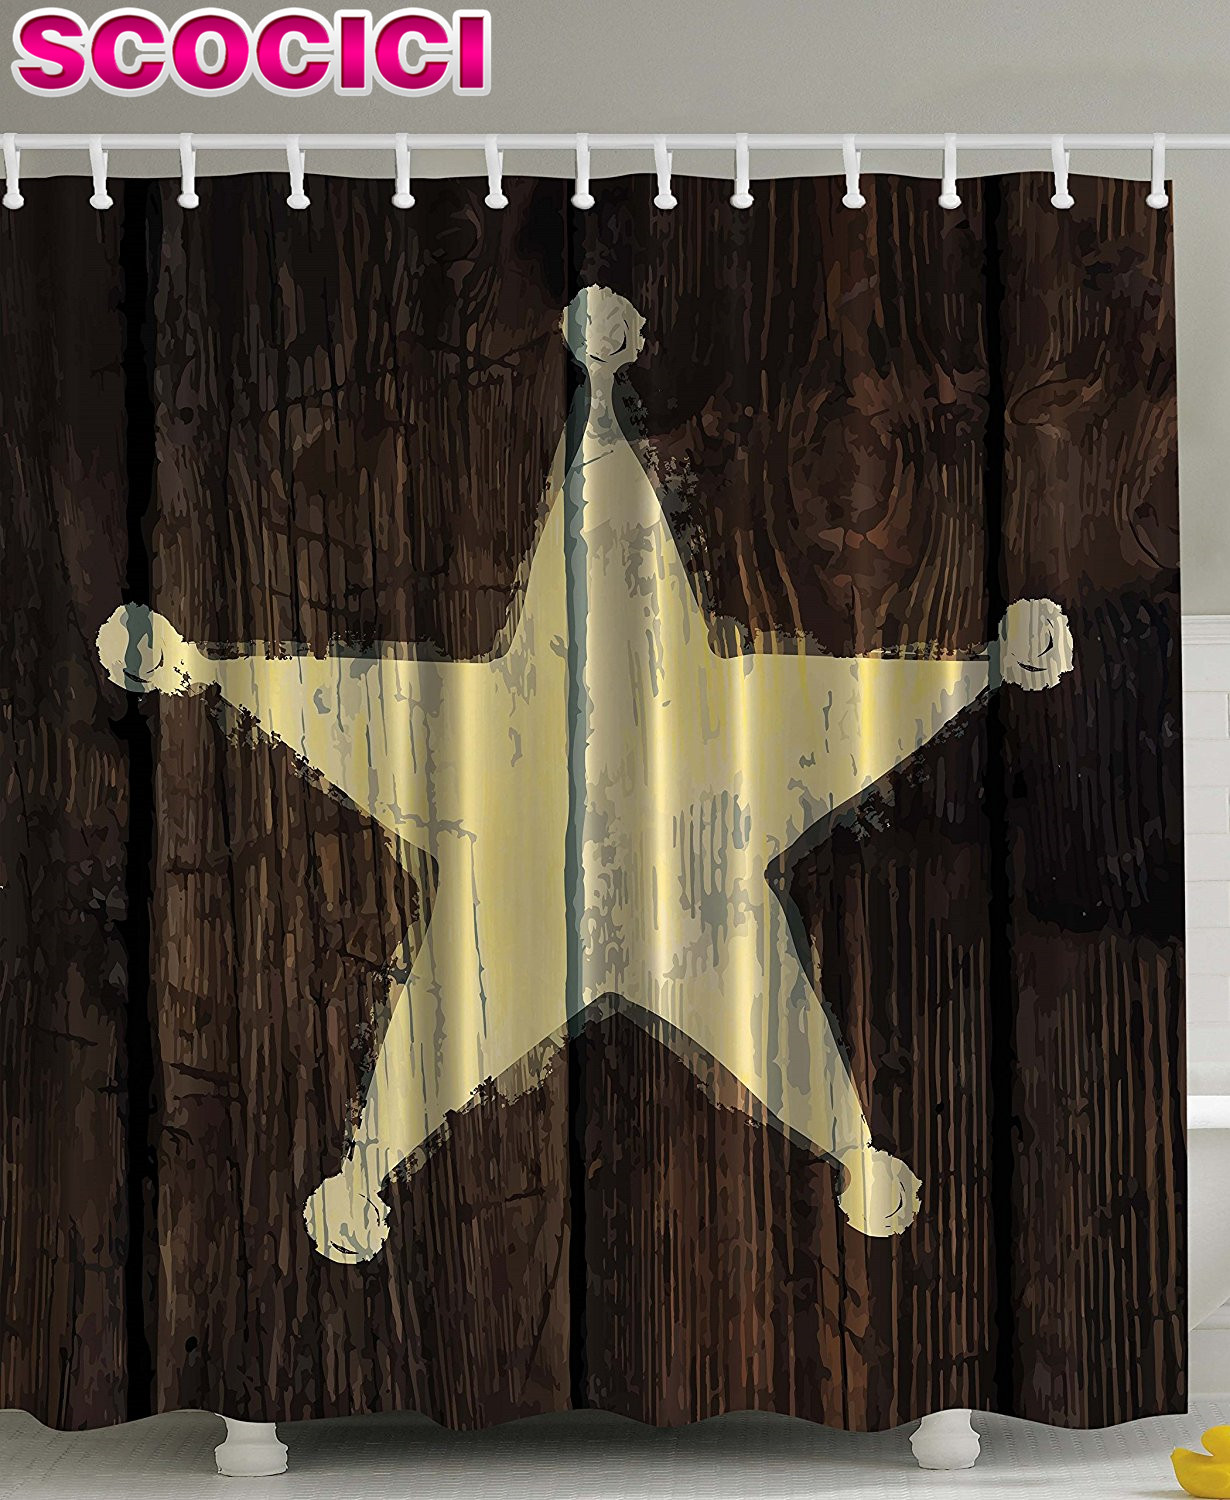 Country western shower curtains - Western Country Shower Curtain Decor Southwestern Primitive Rustic Wooden Lone Star Sheriffs Badge Five Point Antiqued Look Army